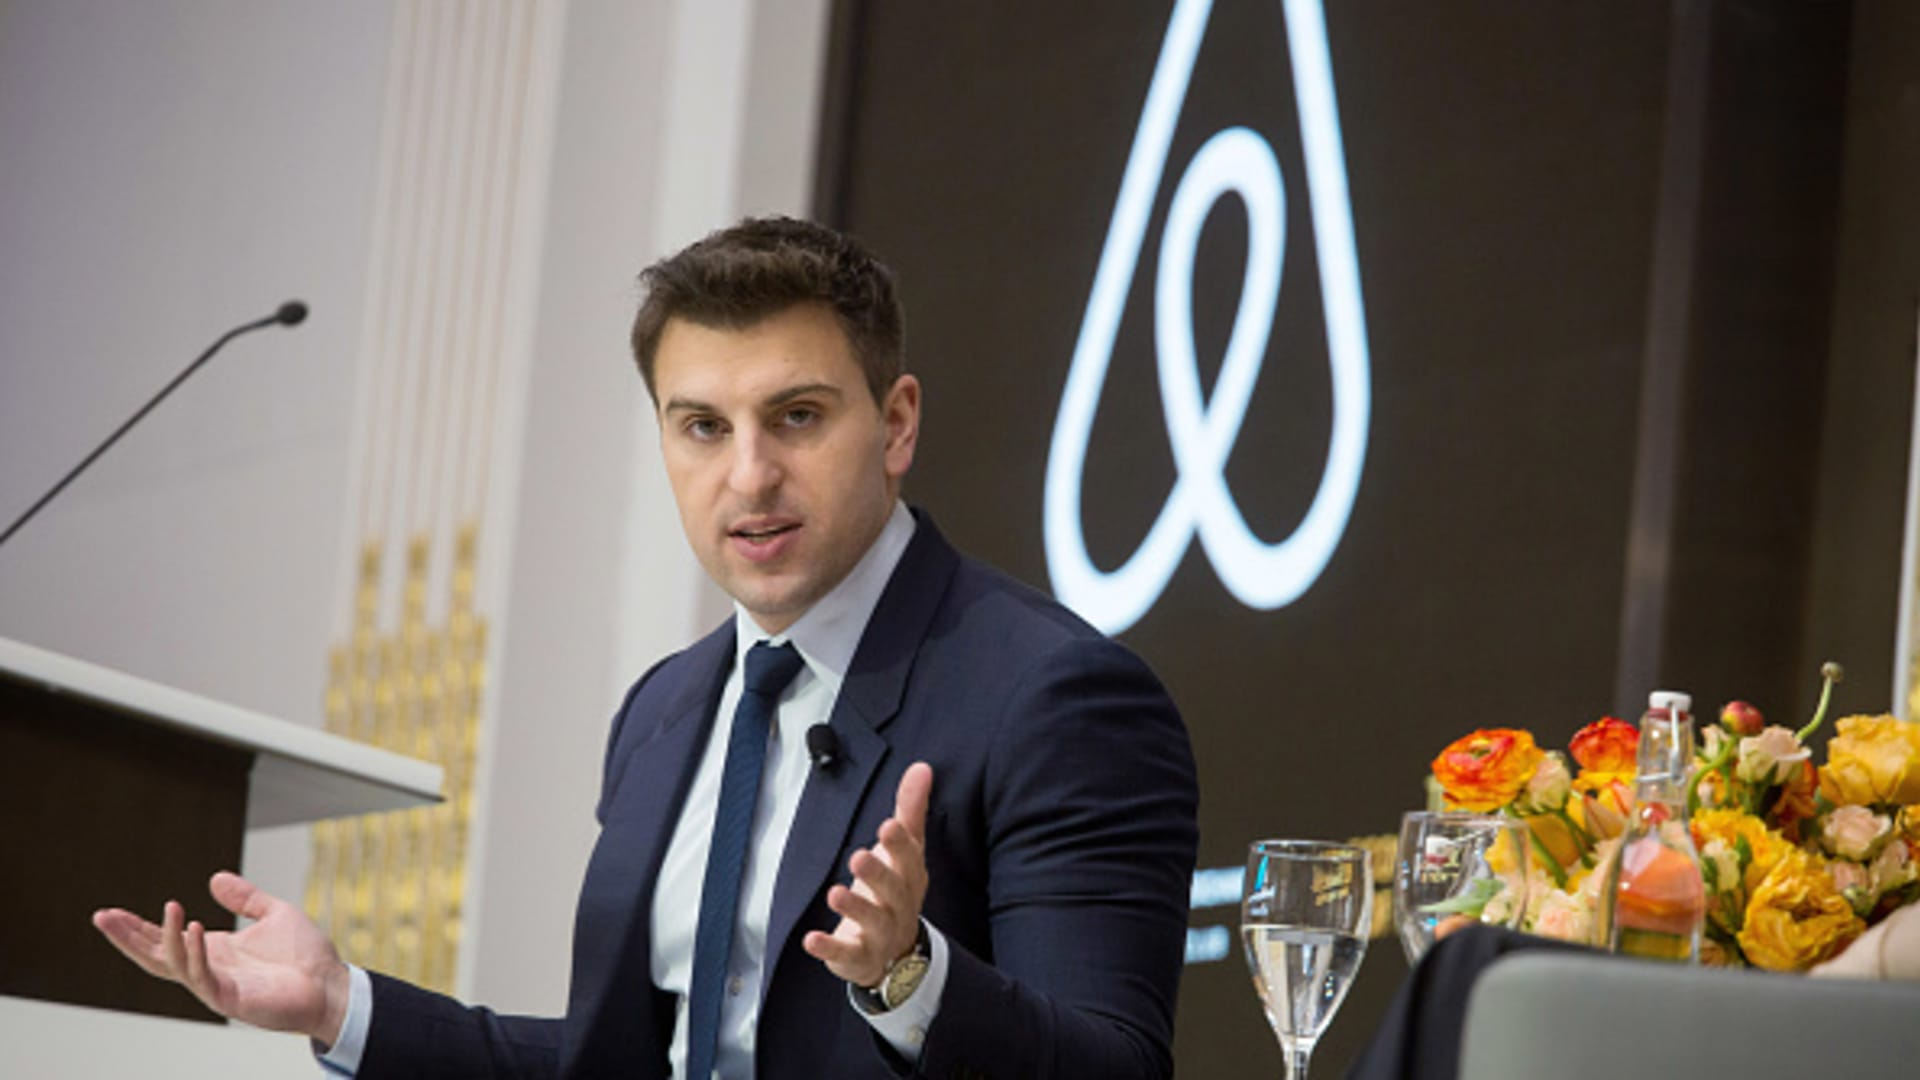 Brian Chesky, chief executive officer and co-founder of Airbnb Inc., speaks during an Economic Club of New York luncheon at the New York Stock Exchange (NYSE) in New York, U.S., on Monday, March 13, 2017.